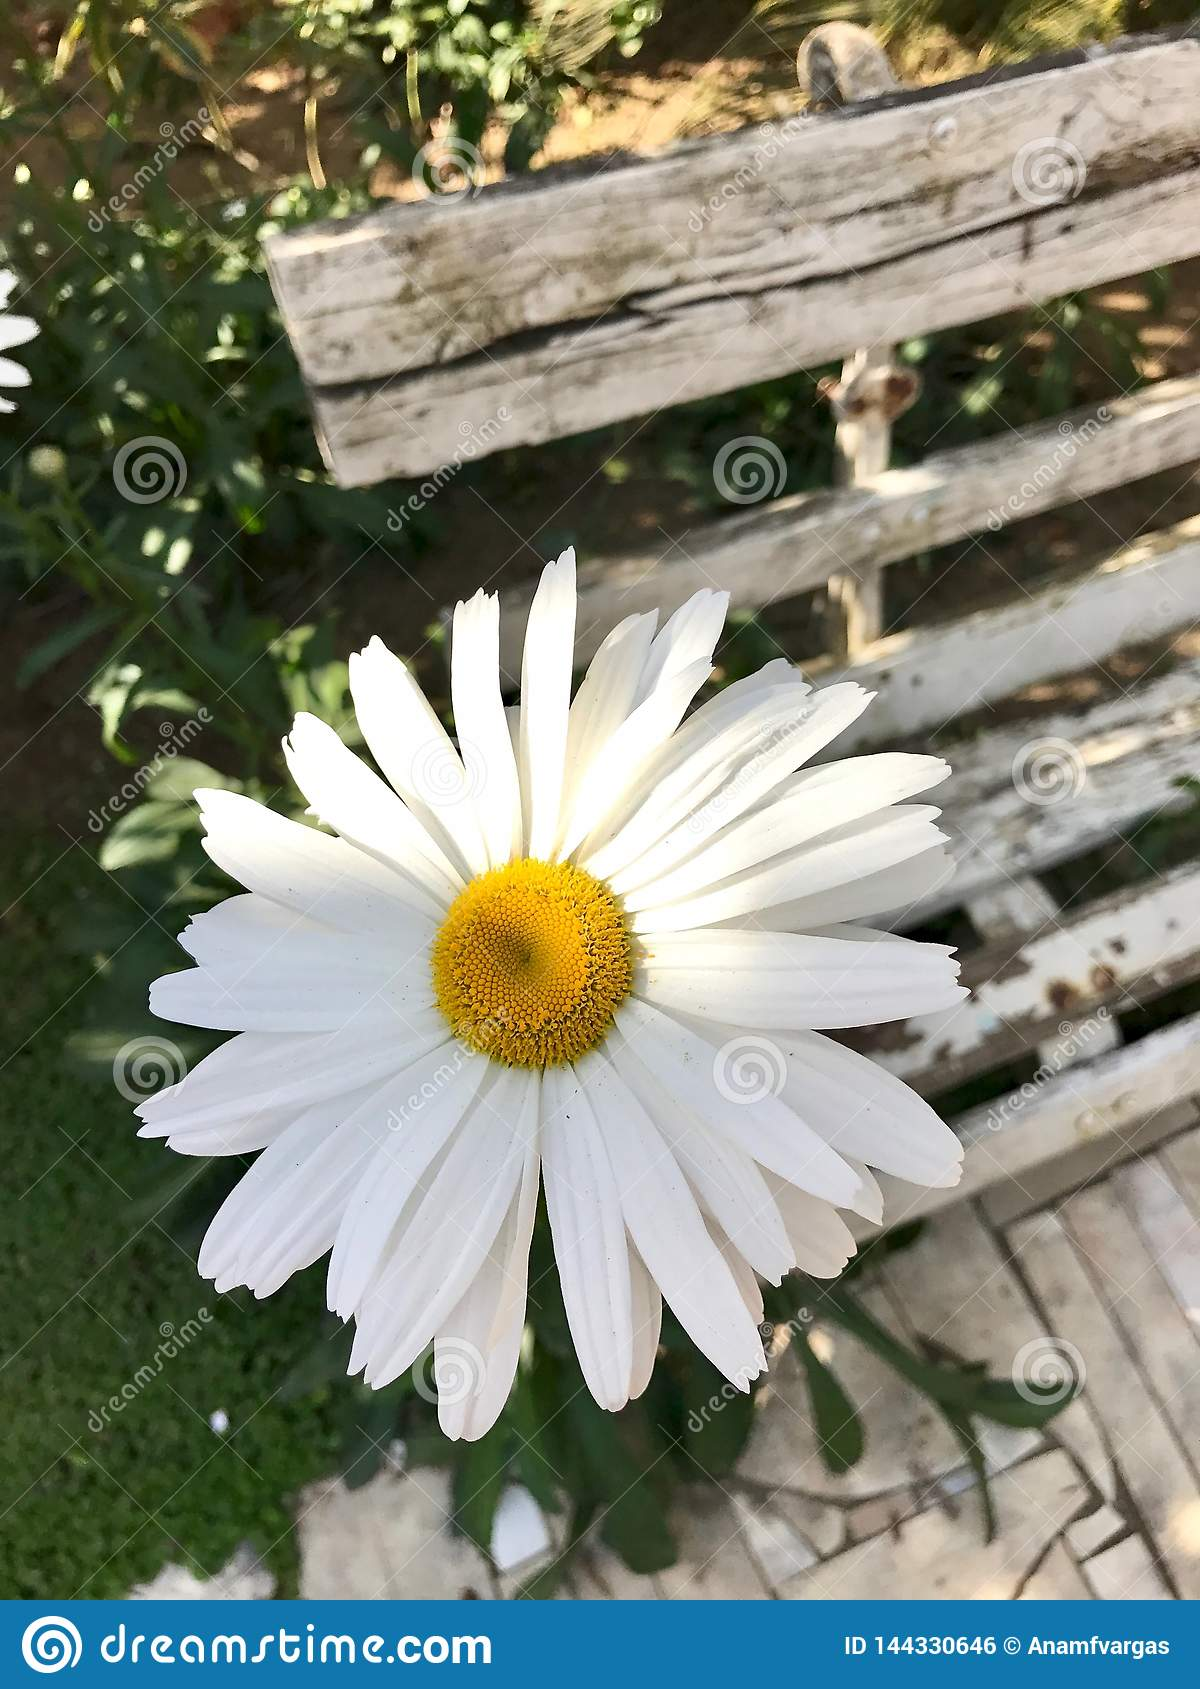 One White Daisy by an old bench